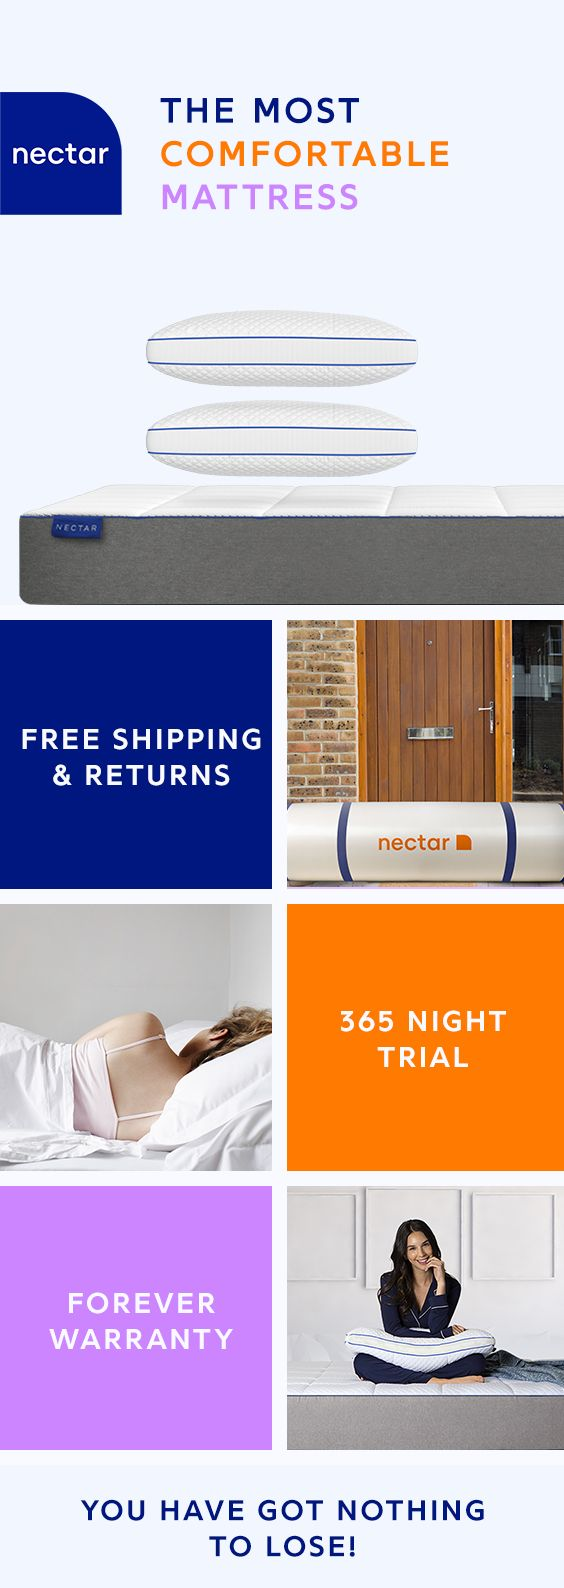 17 best the nectar mattress images on pinterest mattresses sleep